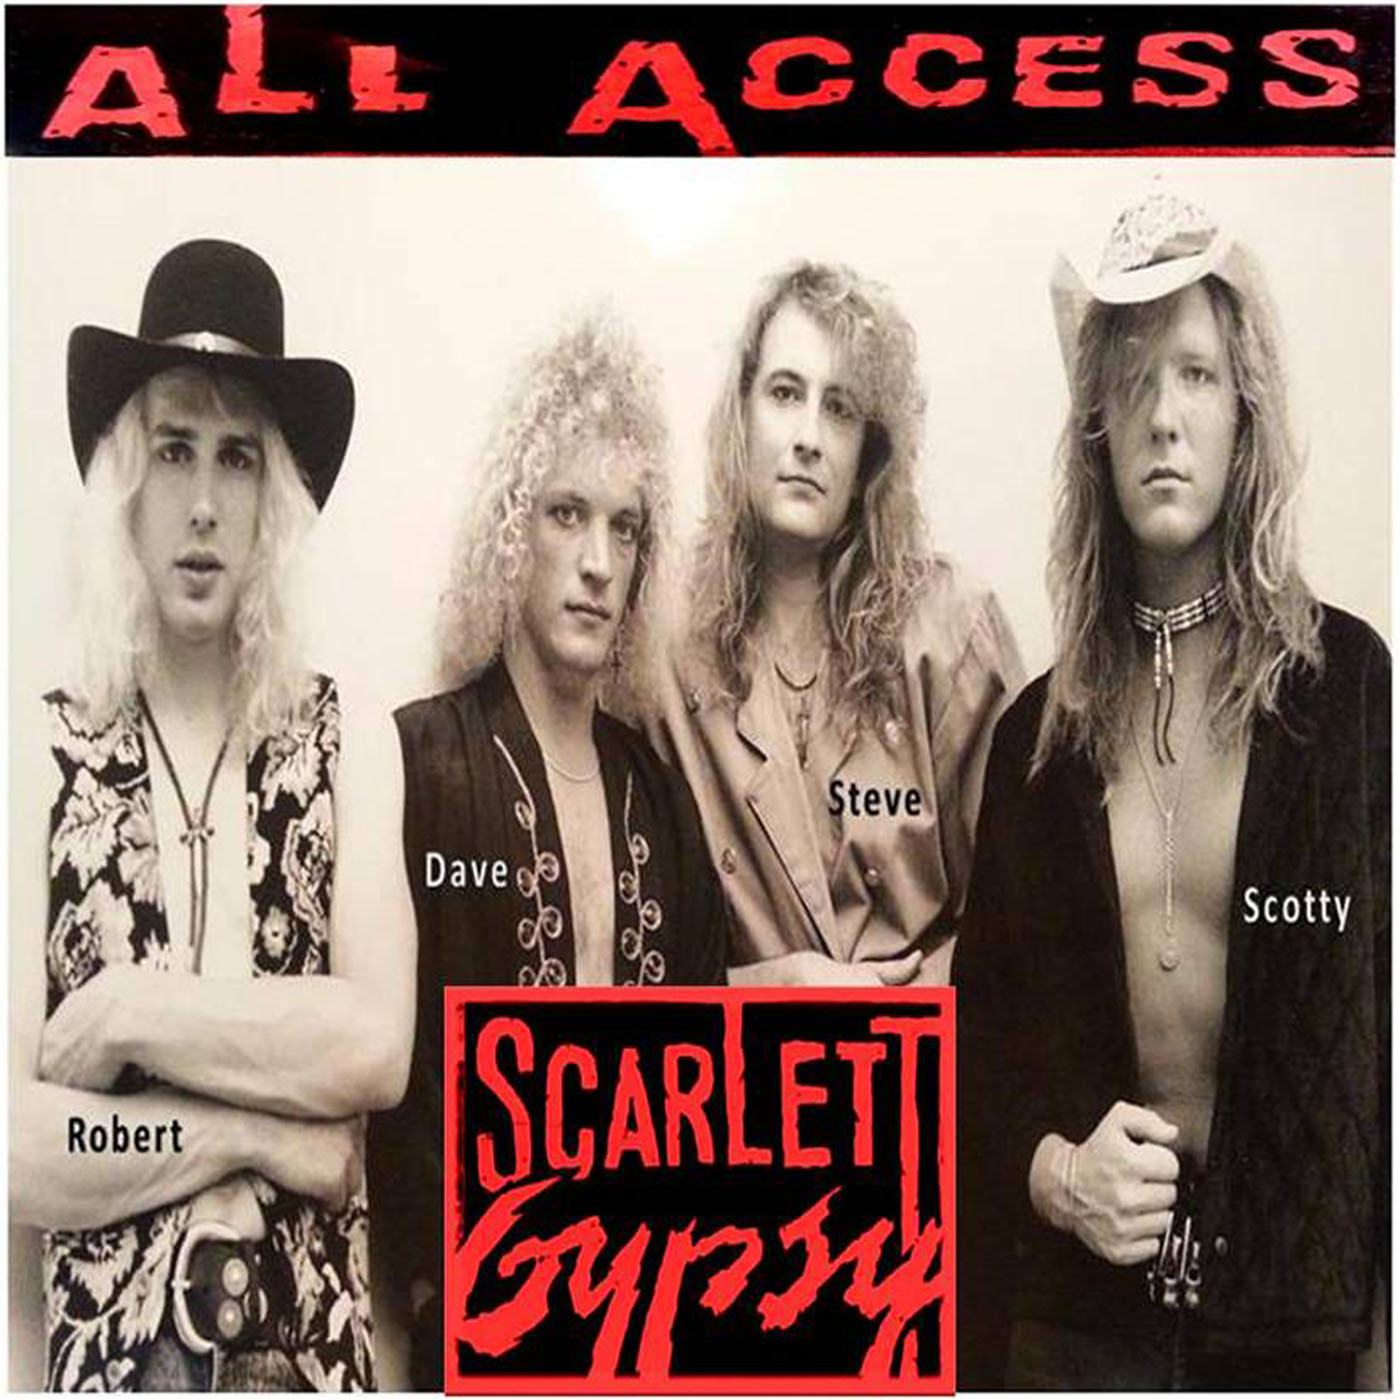 Scarlett_Gypsy_Band